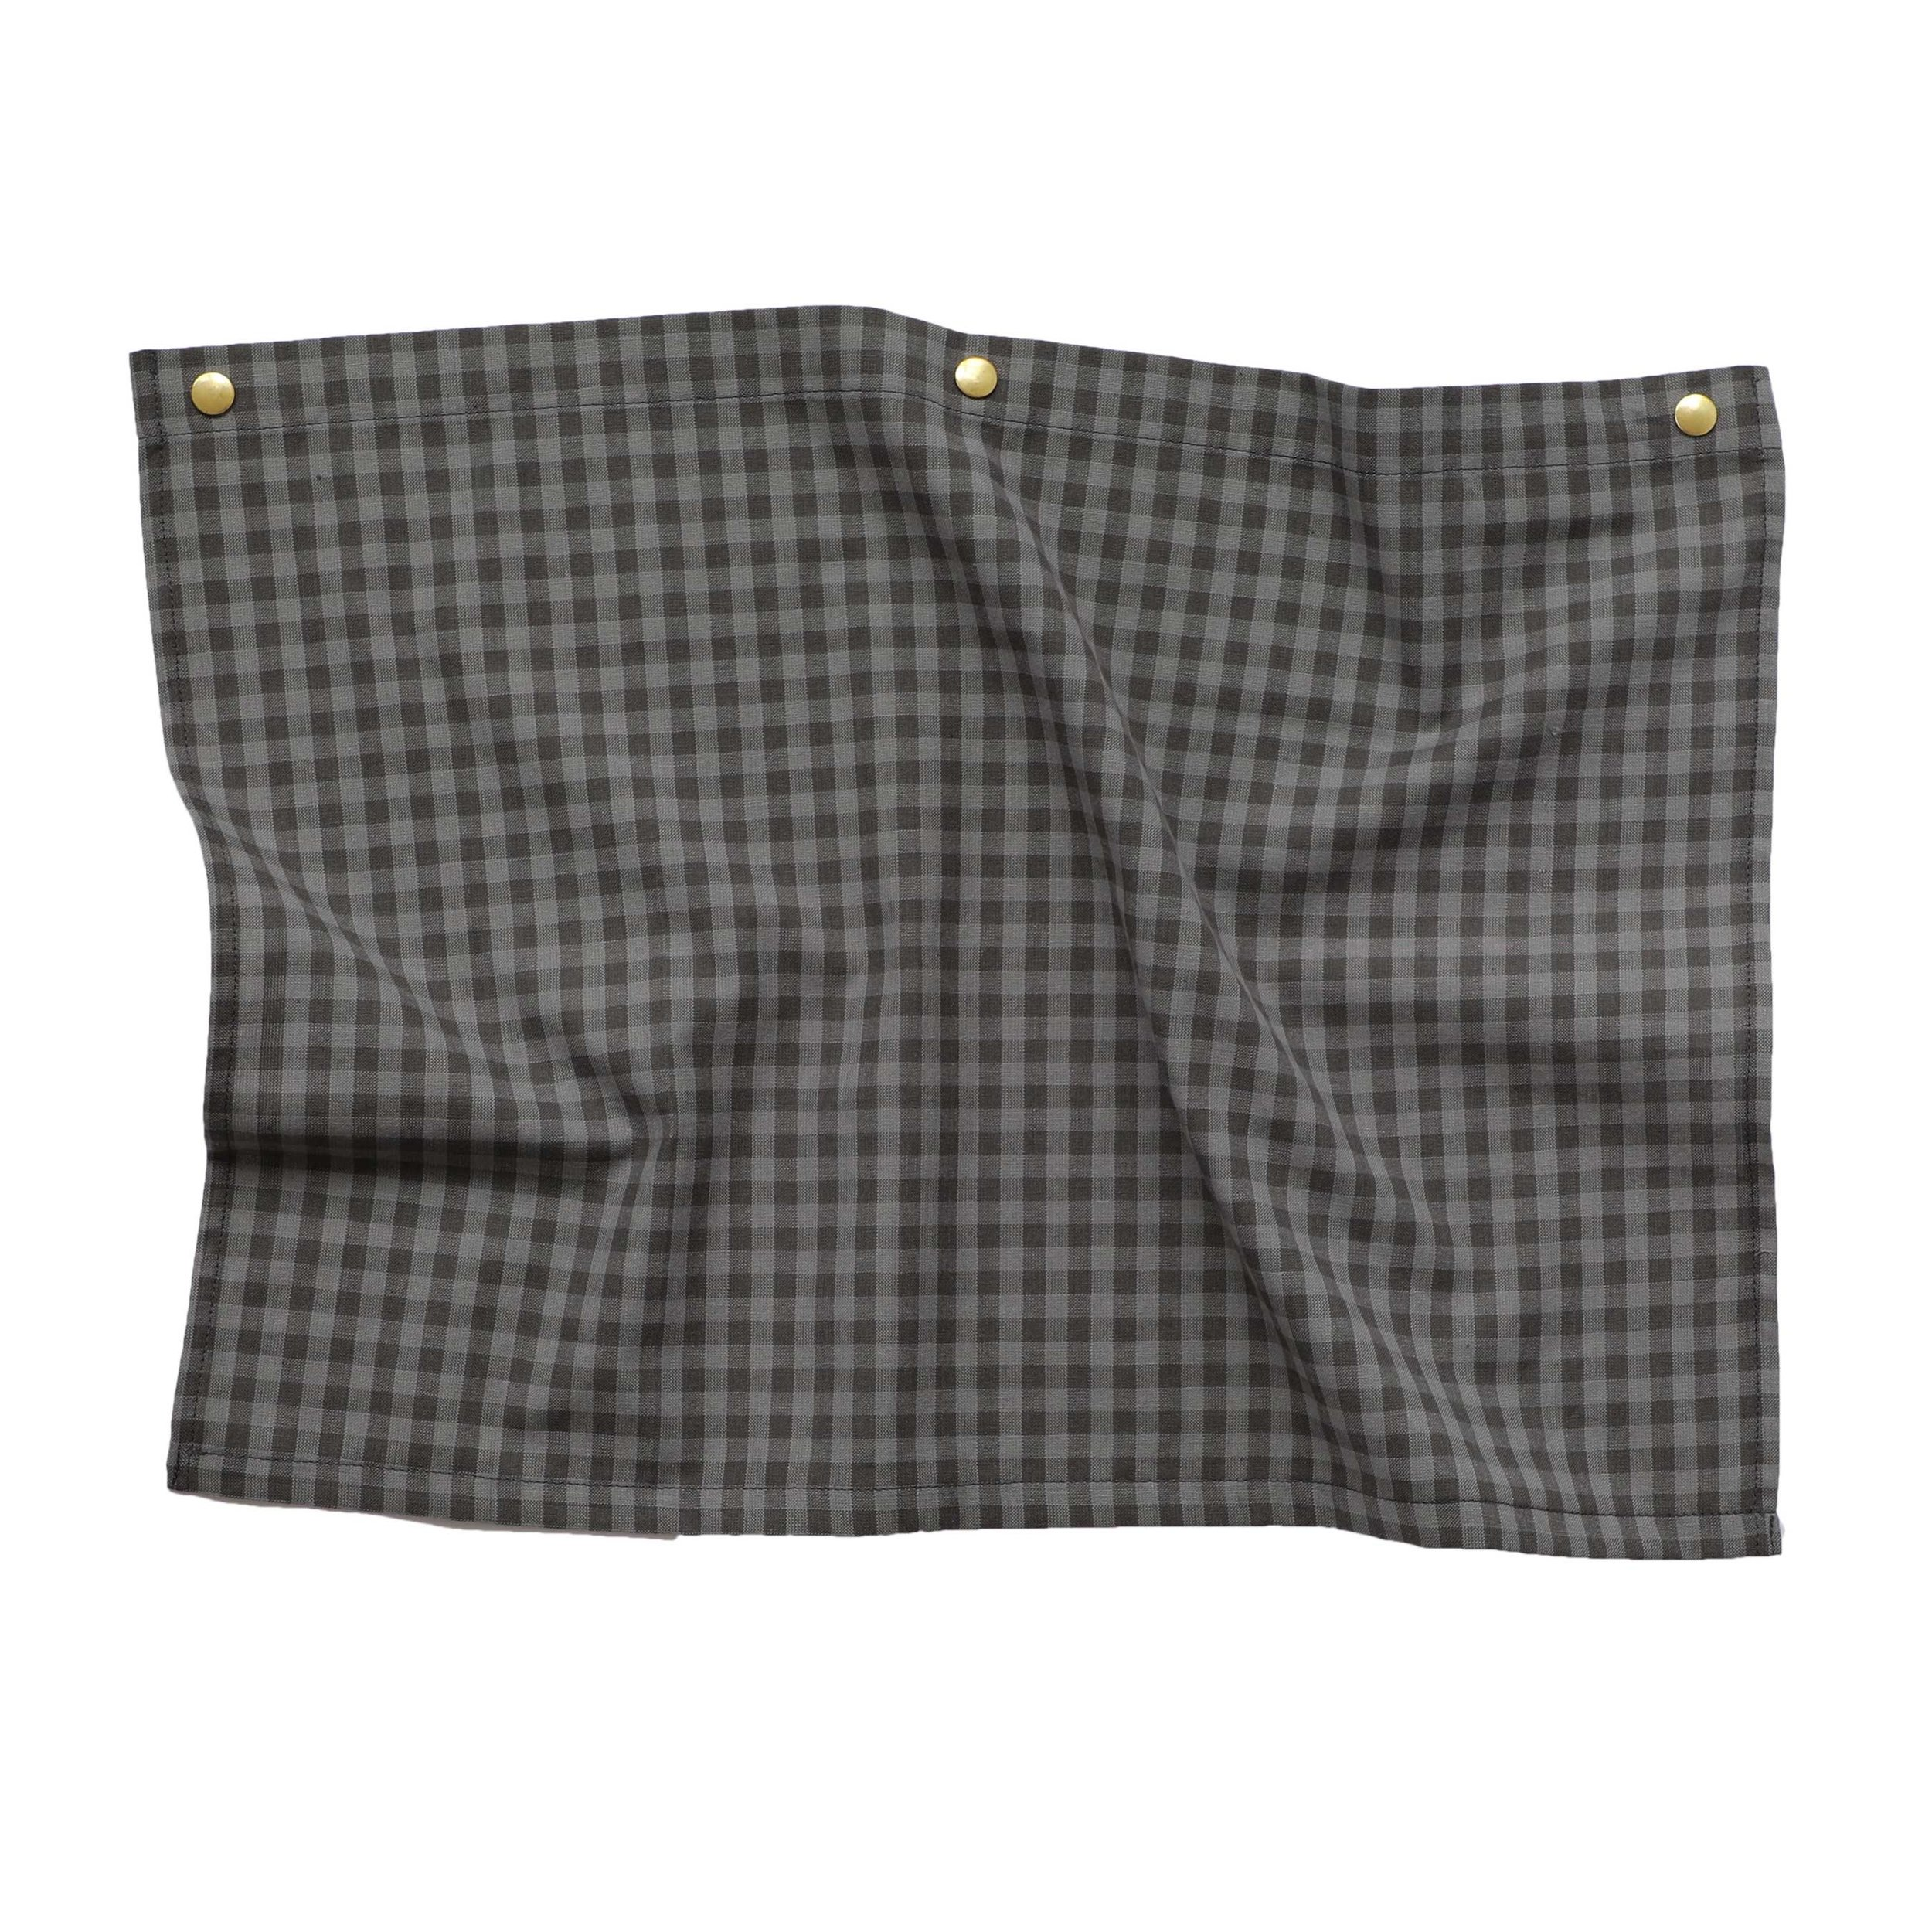 Gingham-Snap-cloth copy.jpg